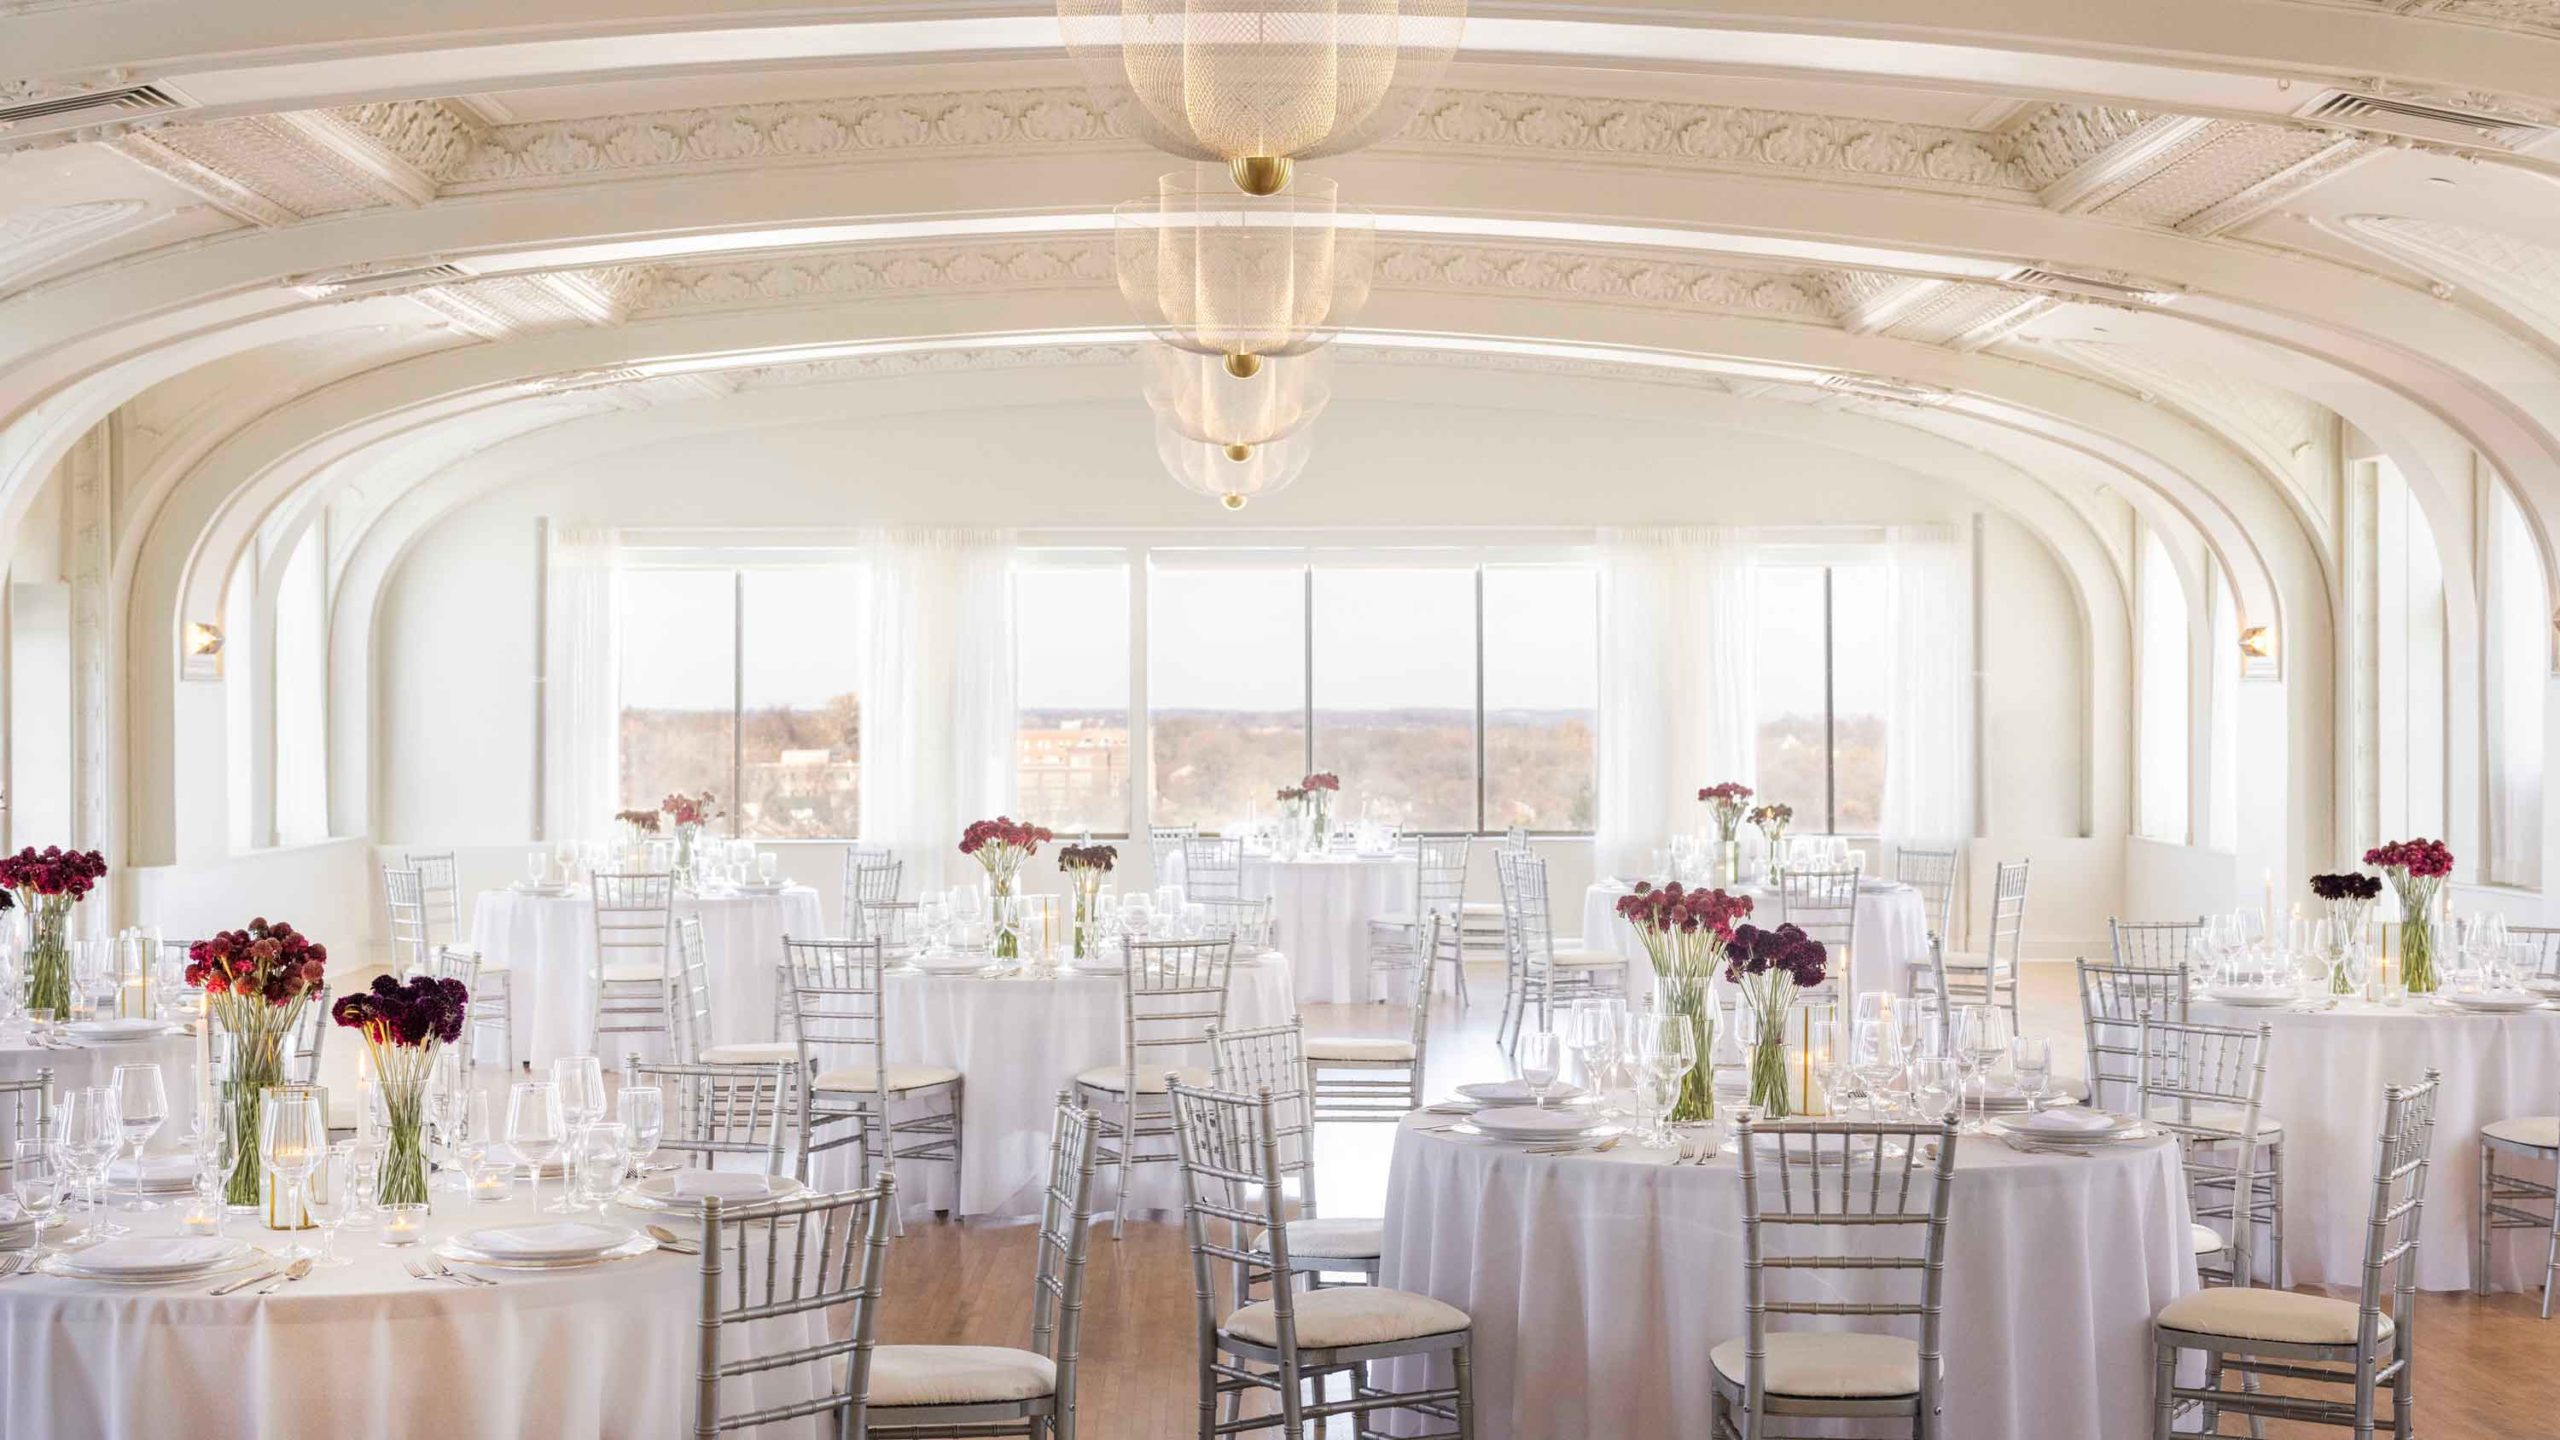 Historic Schimmel Ballroom at The Kimpton Cottonwood Hotel